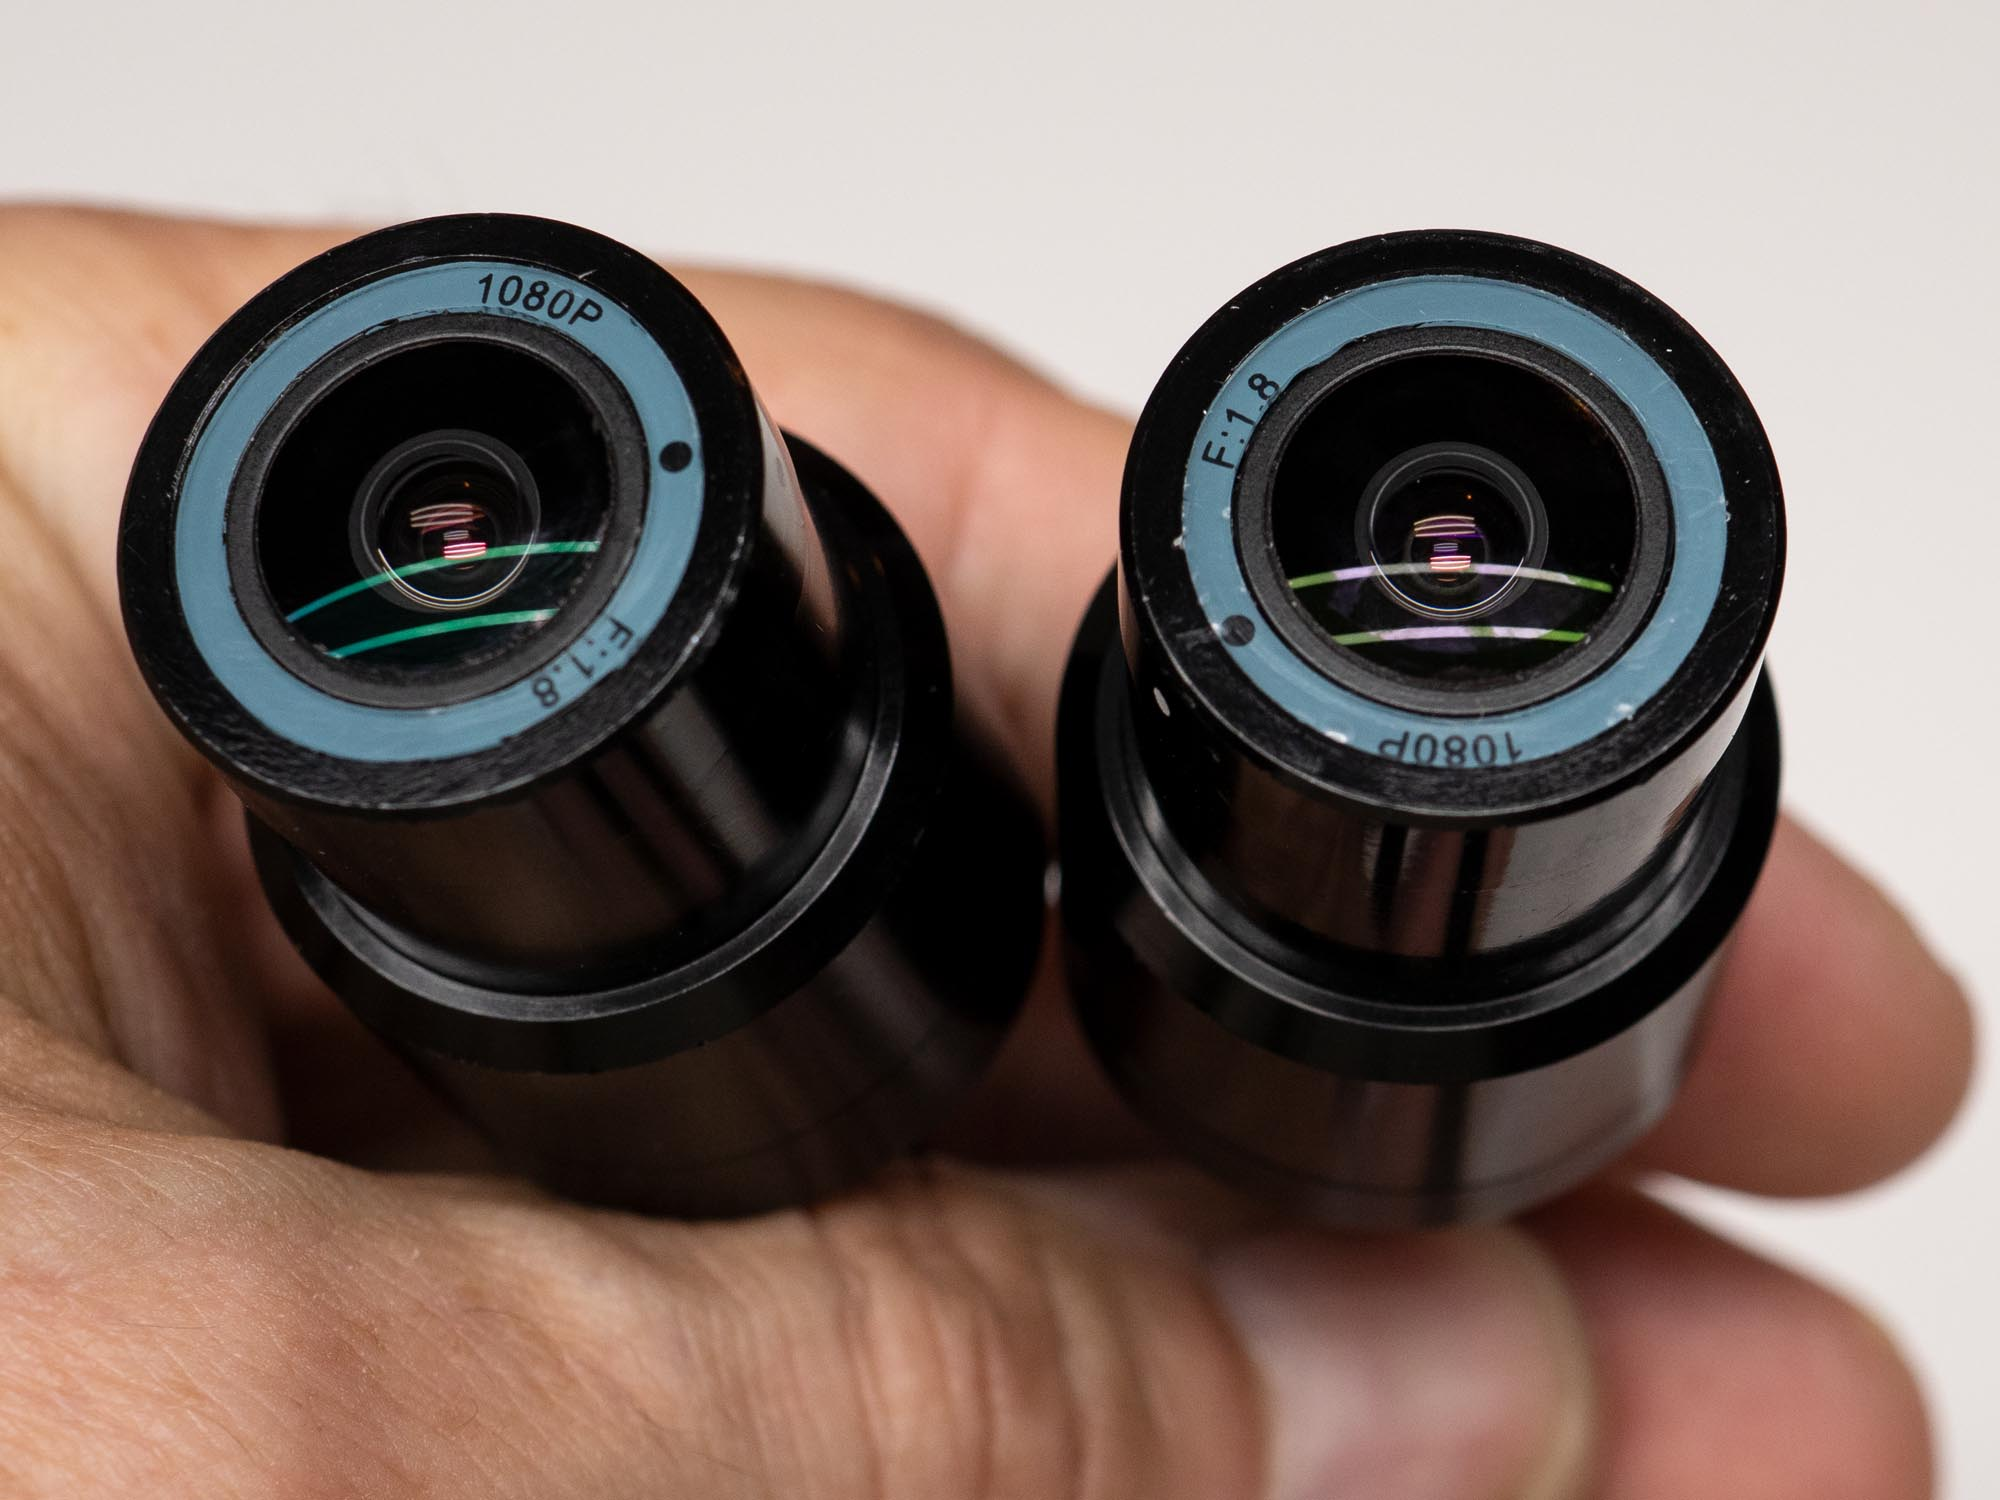 Halocam M1 Motorcycle Dashcam lenses